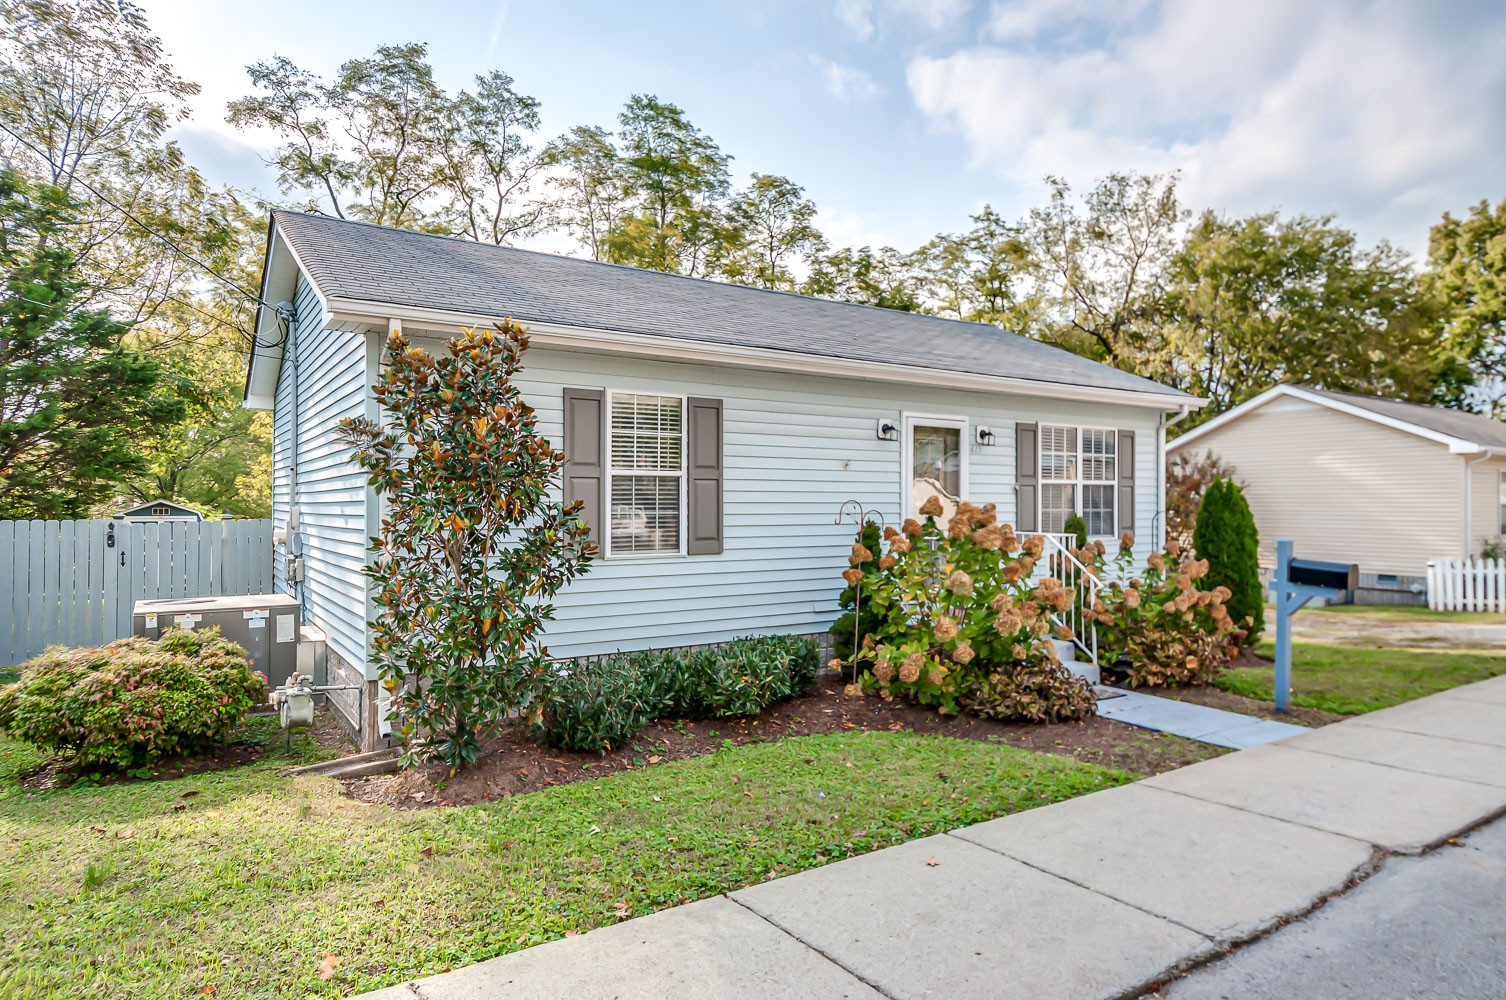 Charming 2 bedroom, 1 bath ranch-walkable to downtown Franklin and library. Upgrades include open concept created between kitchen and LR, fenced in backyard, new tile flooring throughout, fully renovated kitchen, all new appliances and fully renovated bathroom. Move in ready!